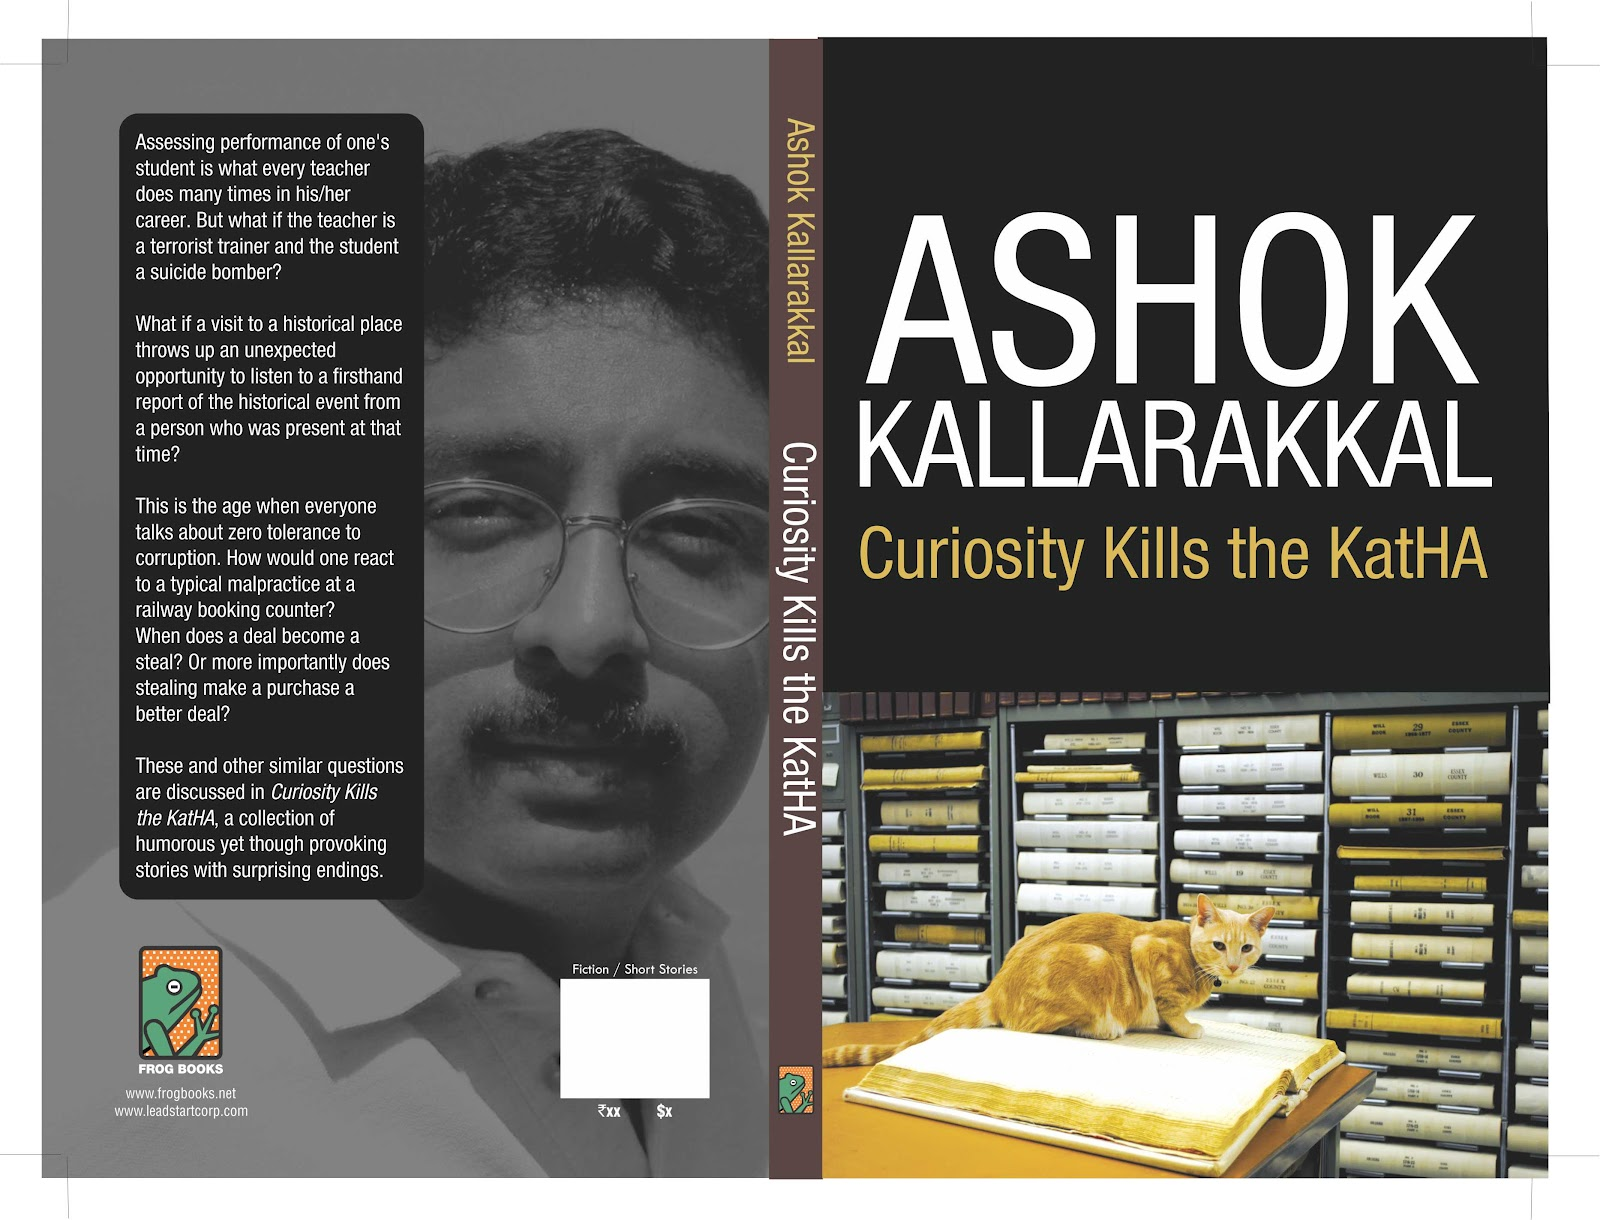 Cover Design Gotpleted Couple Of Days Back Mishta Has Done A Wonderful  Job Of Bringing Out The 'mystery' Aspect Of The Book Through A Fantastic  Cover